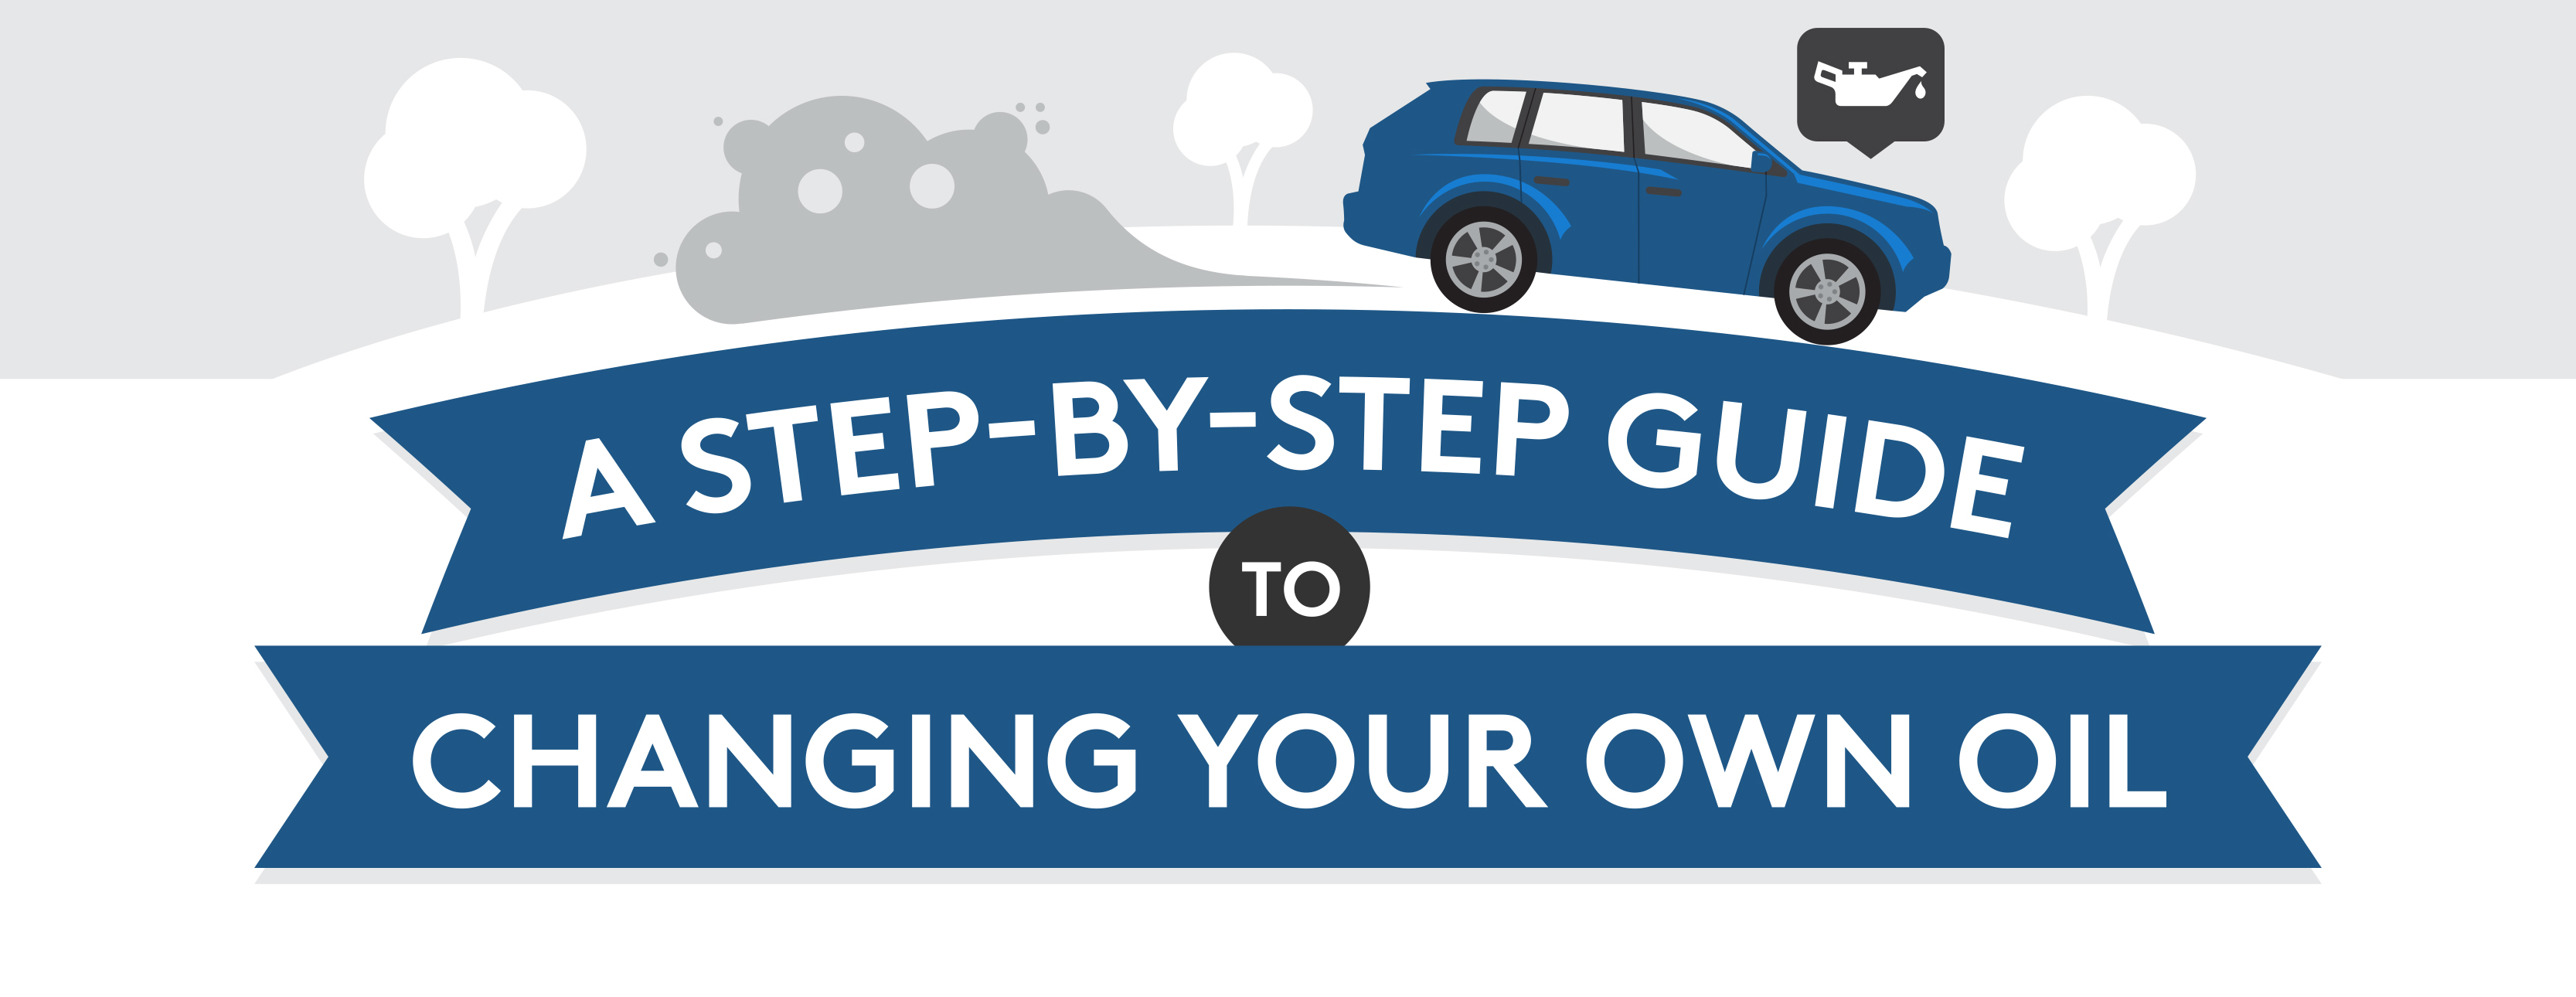 How To Change Your Oil - Dave Walter Volkswagen Blog